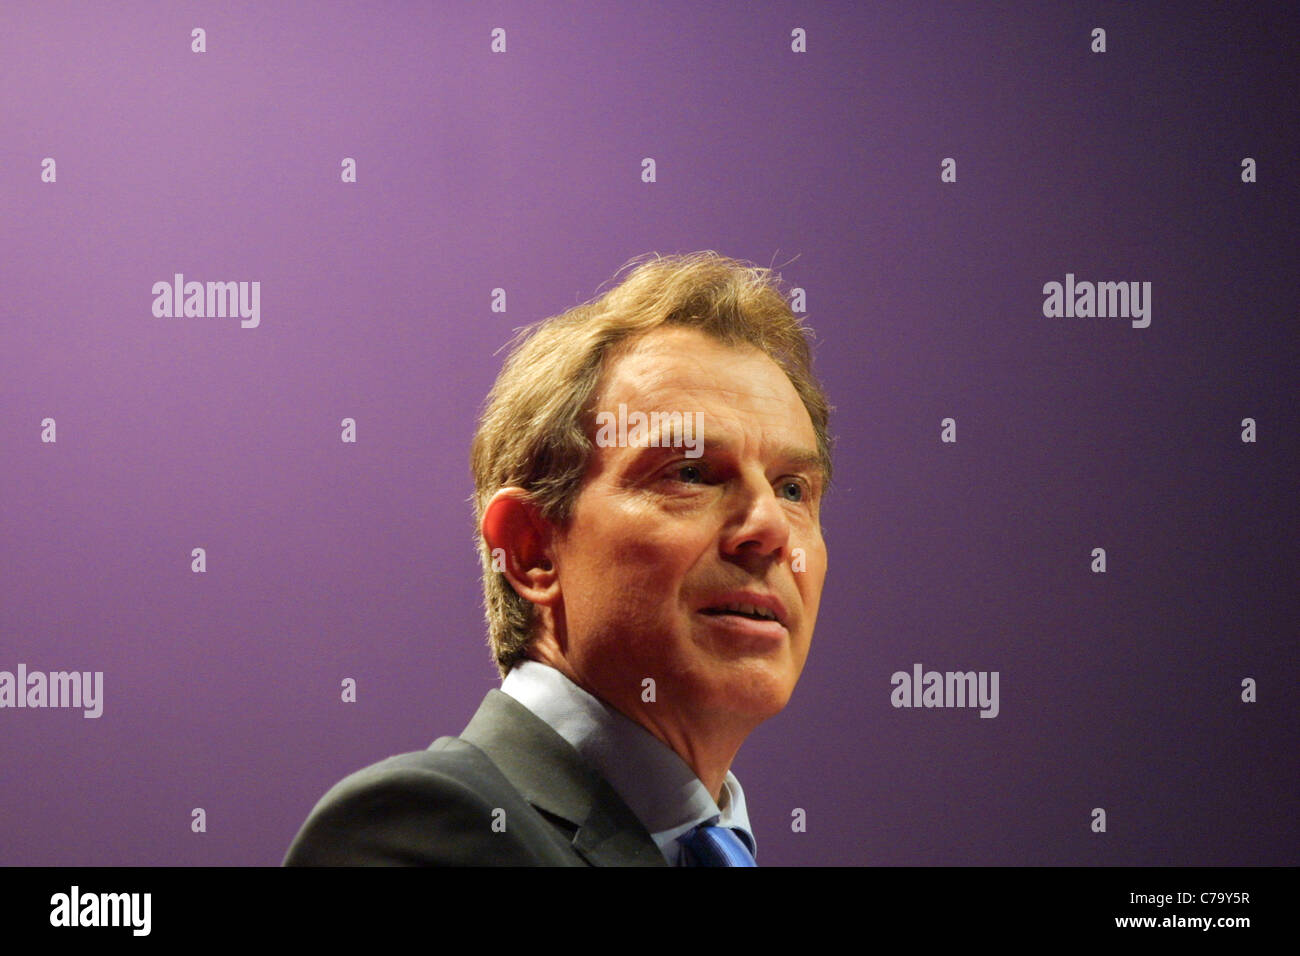 Prime Minister Tony Blair speaks at the Labour Party conference, held in Glasgow, Scotland, on 15th February 2003. - Stock Image